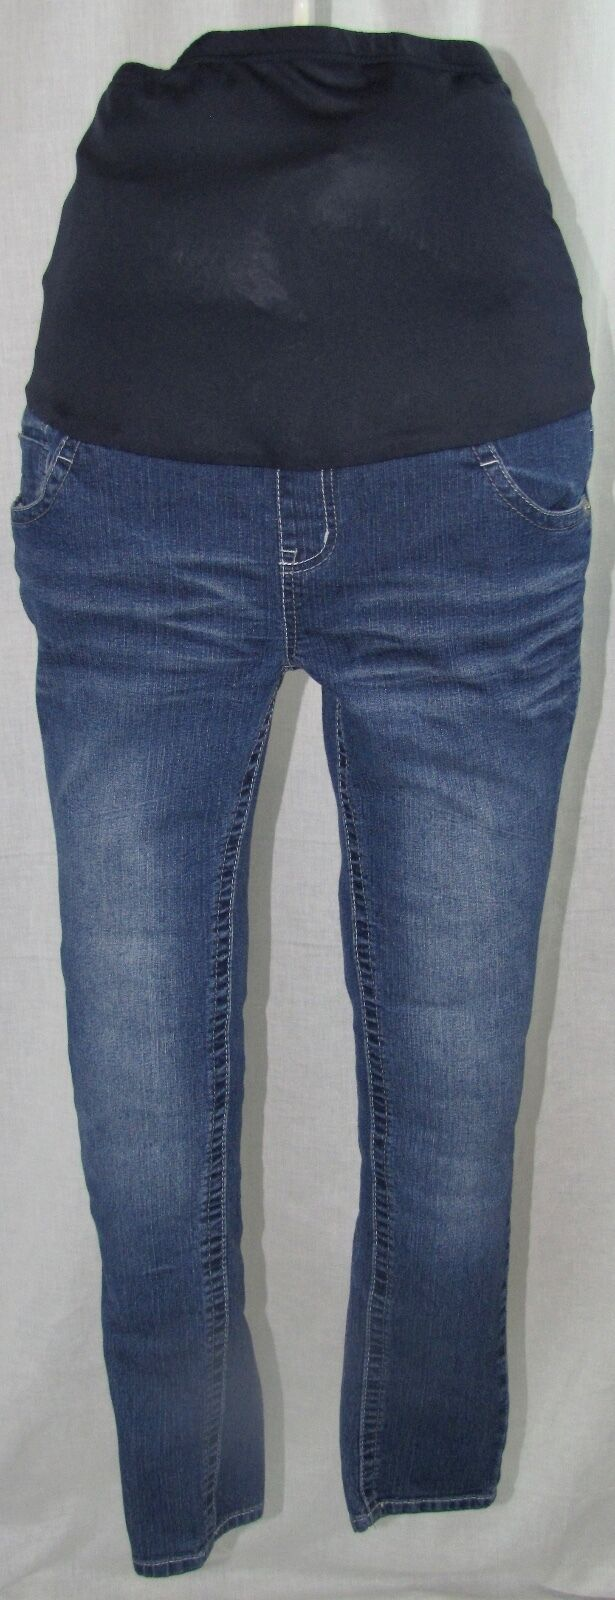 Paris bluees Maternity Jeans S Full Panel Skinny Medium Wash Small Denim Pants